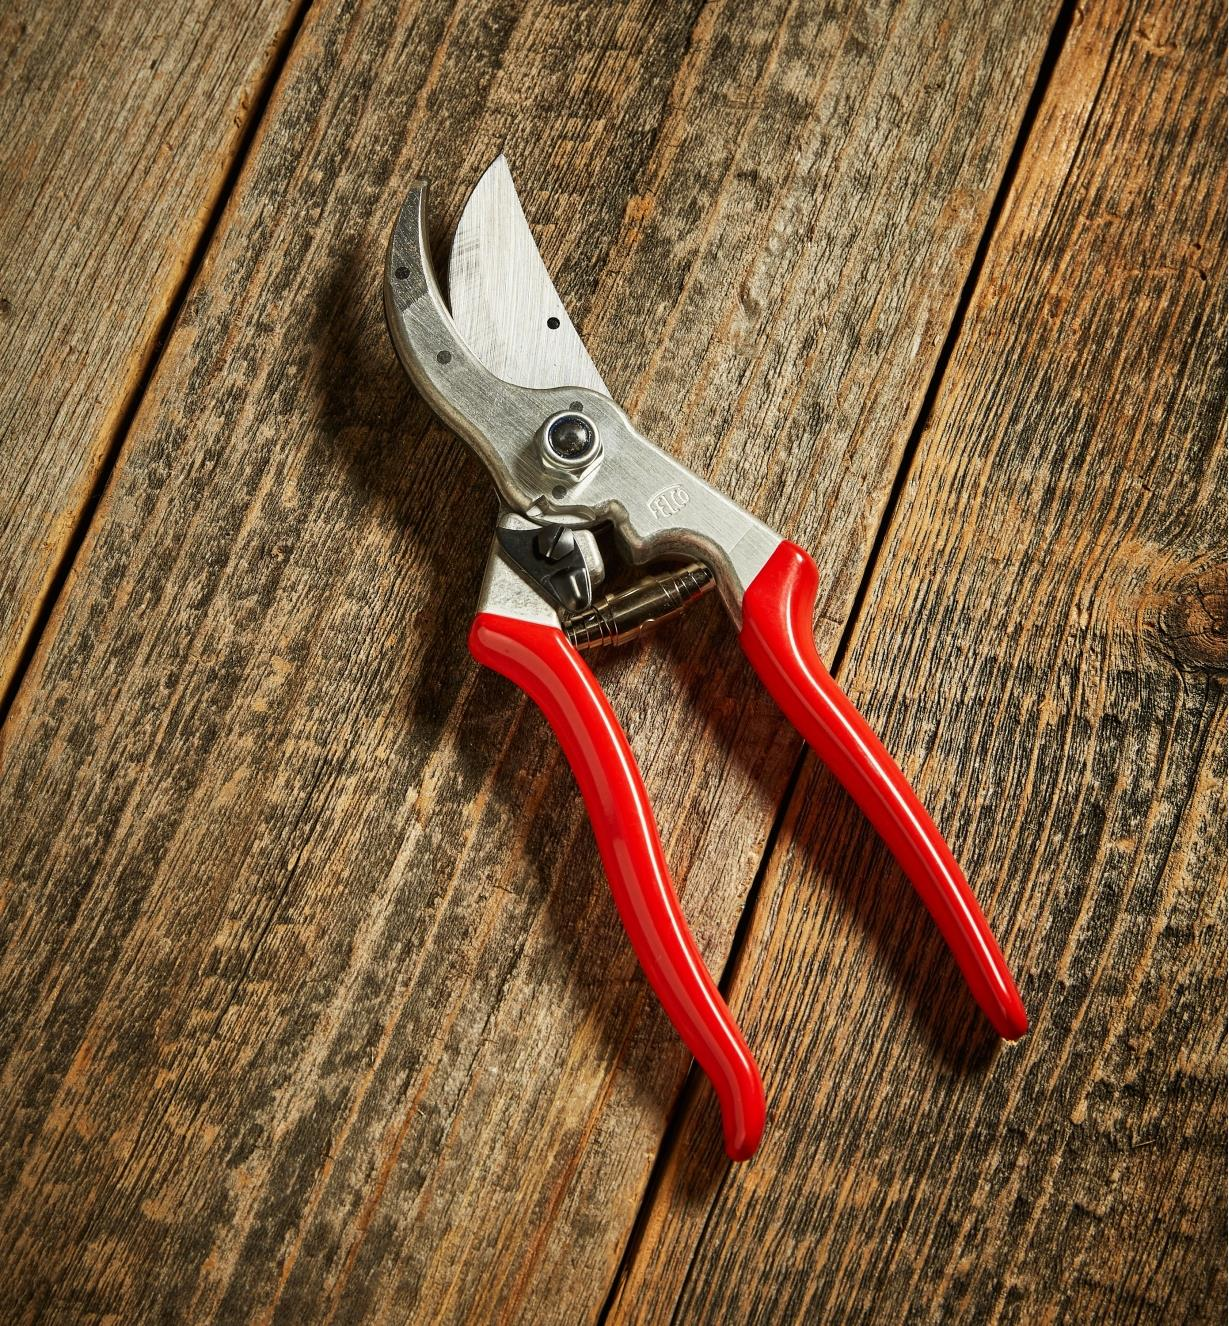 AB220 - Felco #4 Pruner, Right Hand